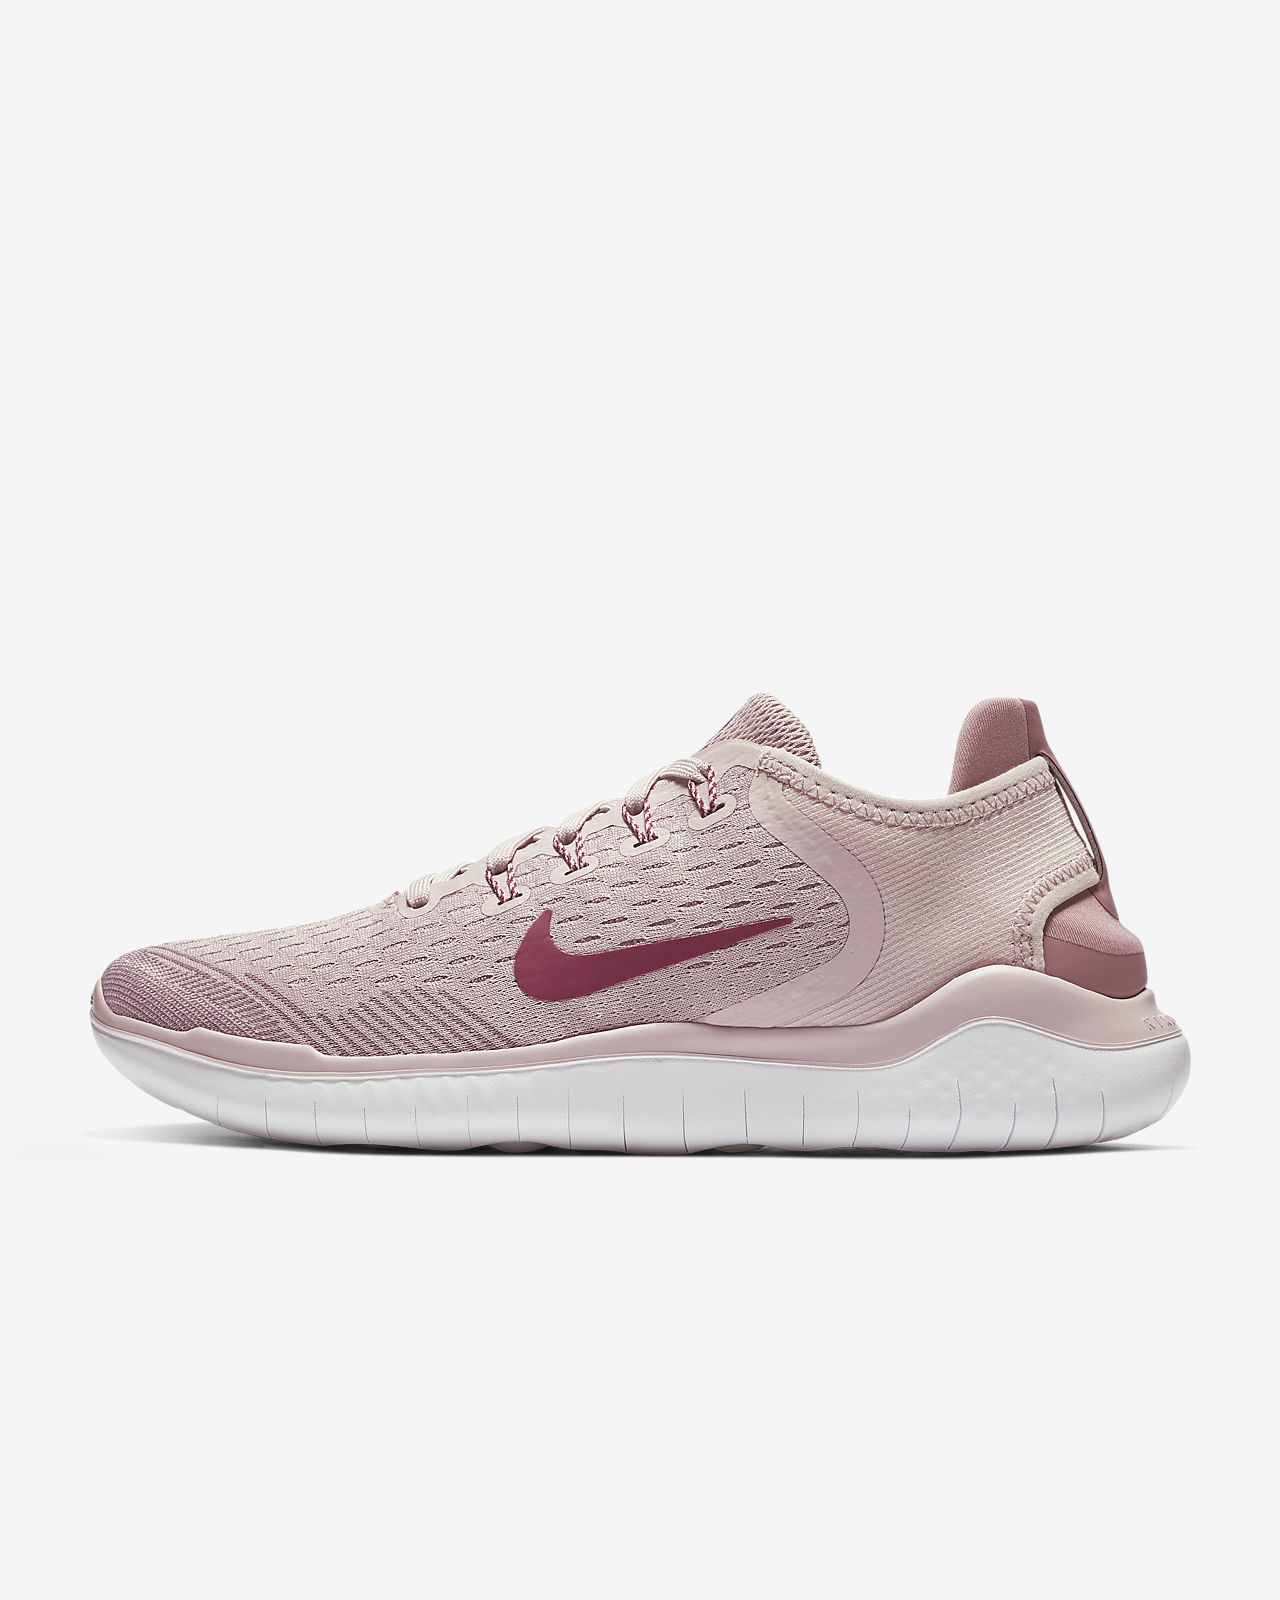 best website b1bf3 62112 Nike Free RN 2018 Women's Running Shoe